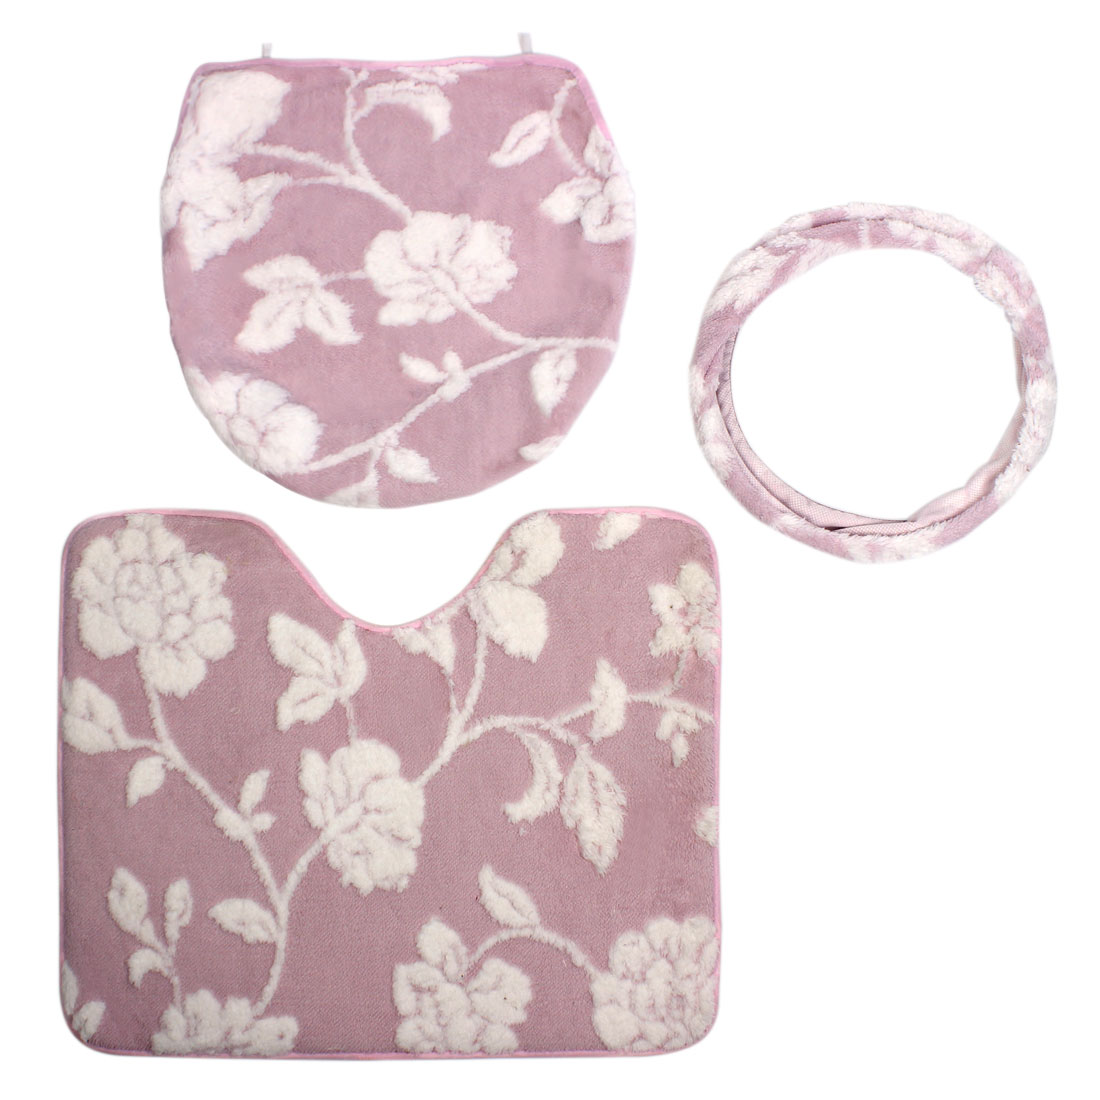 Delicieux Unique Bargains 3 In 1 Floral Pattern Washable Bathroom Floor Non Slip Mat  Pad Pink Bath Rug Set   Walmart.com